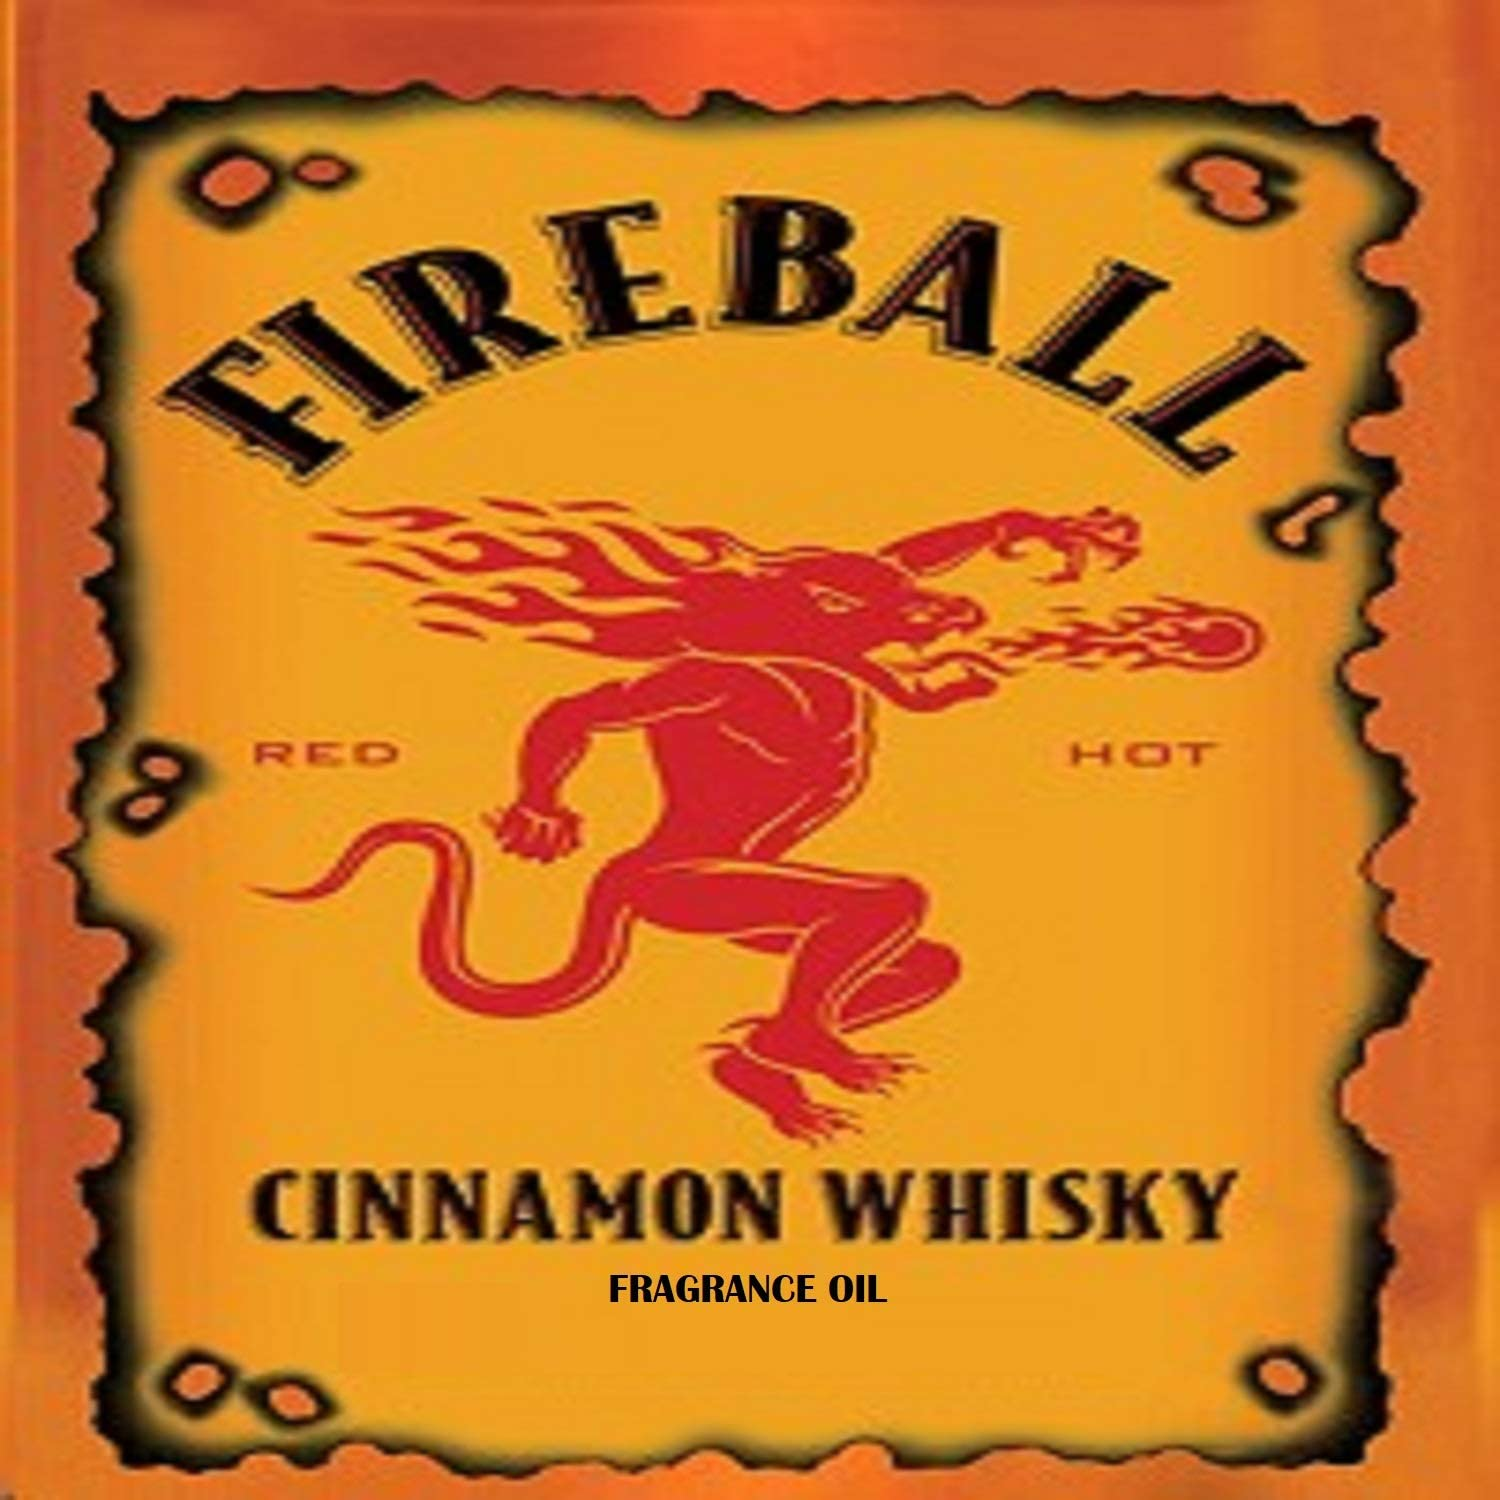 Fireball Whiskey Type Fragrance Oil - 8 oz - for Candle & Soap Making